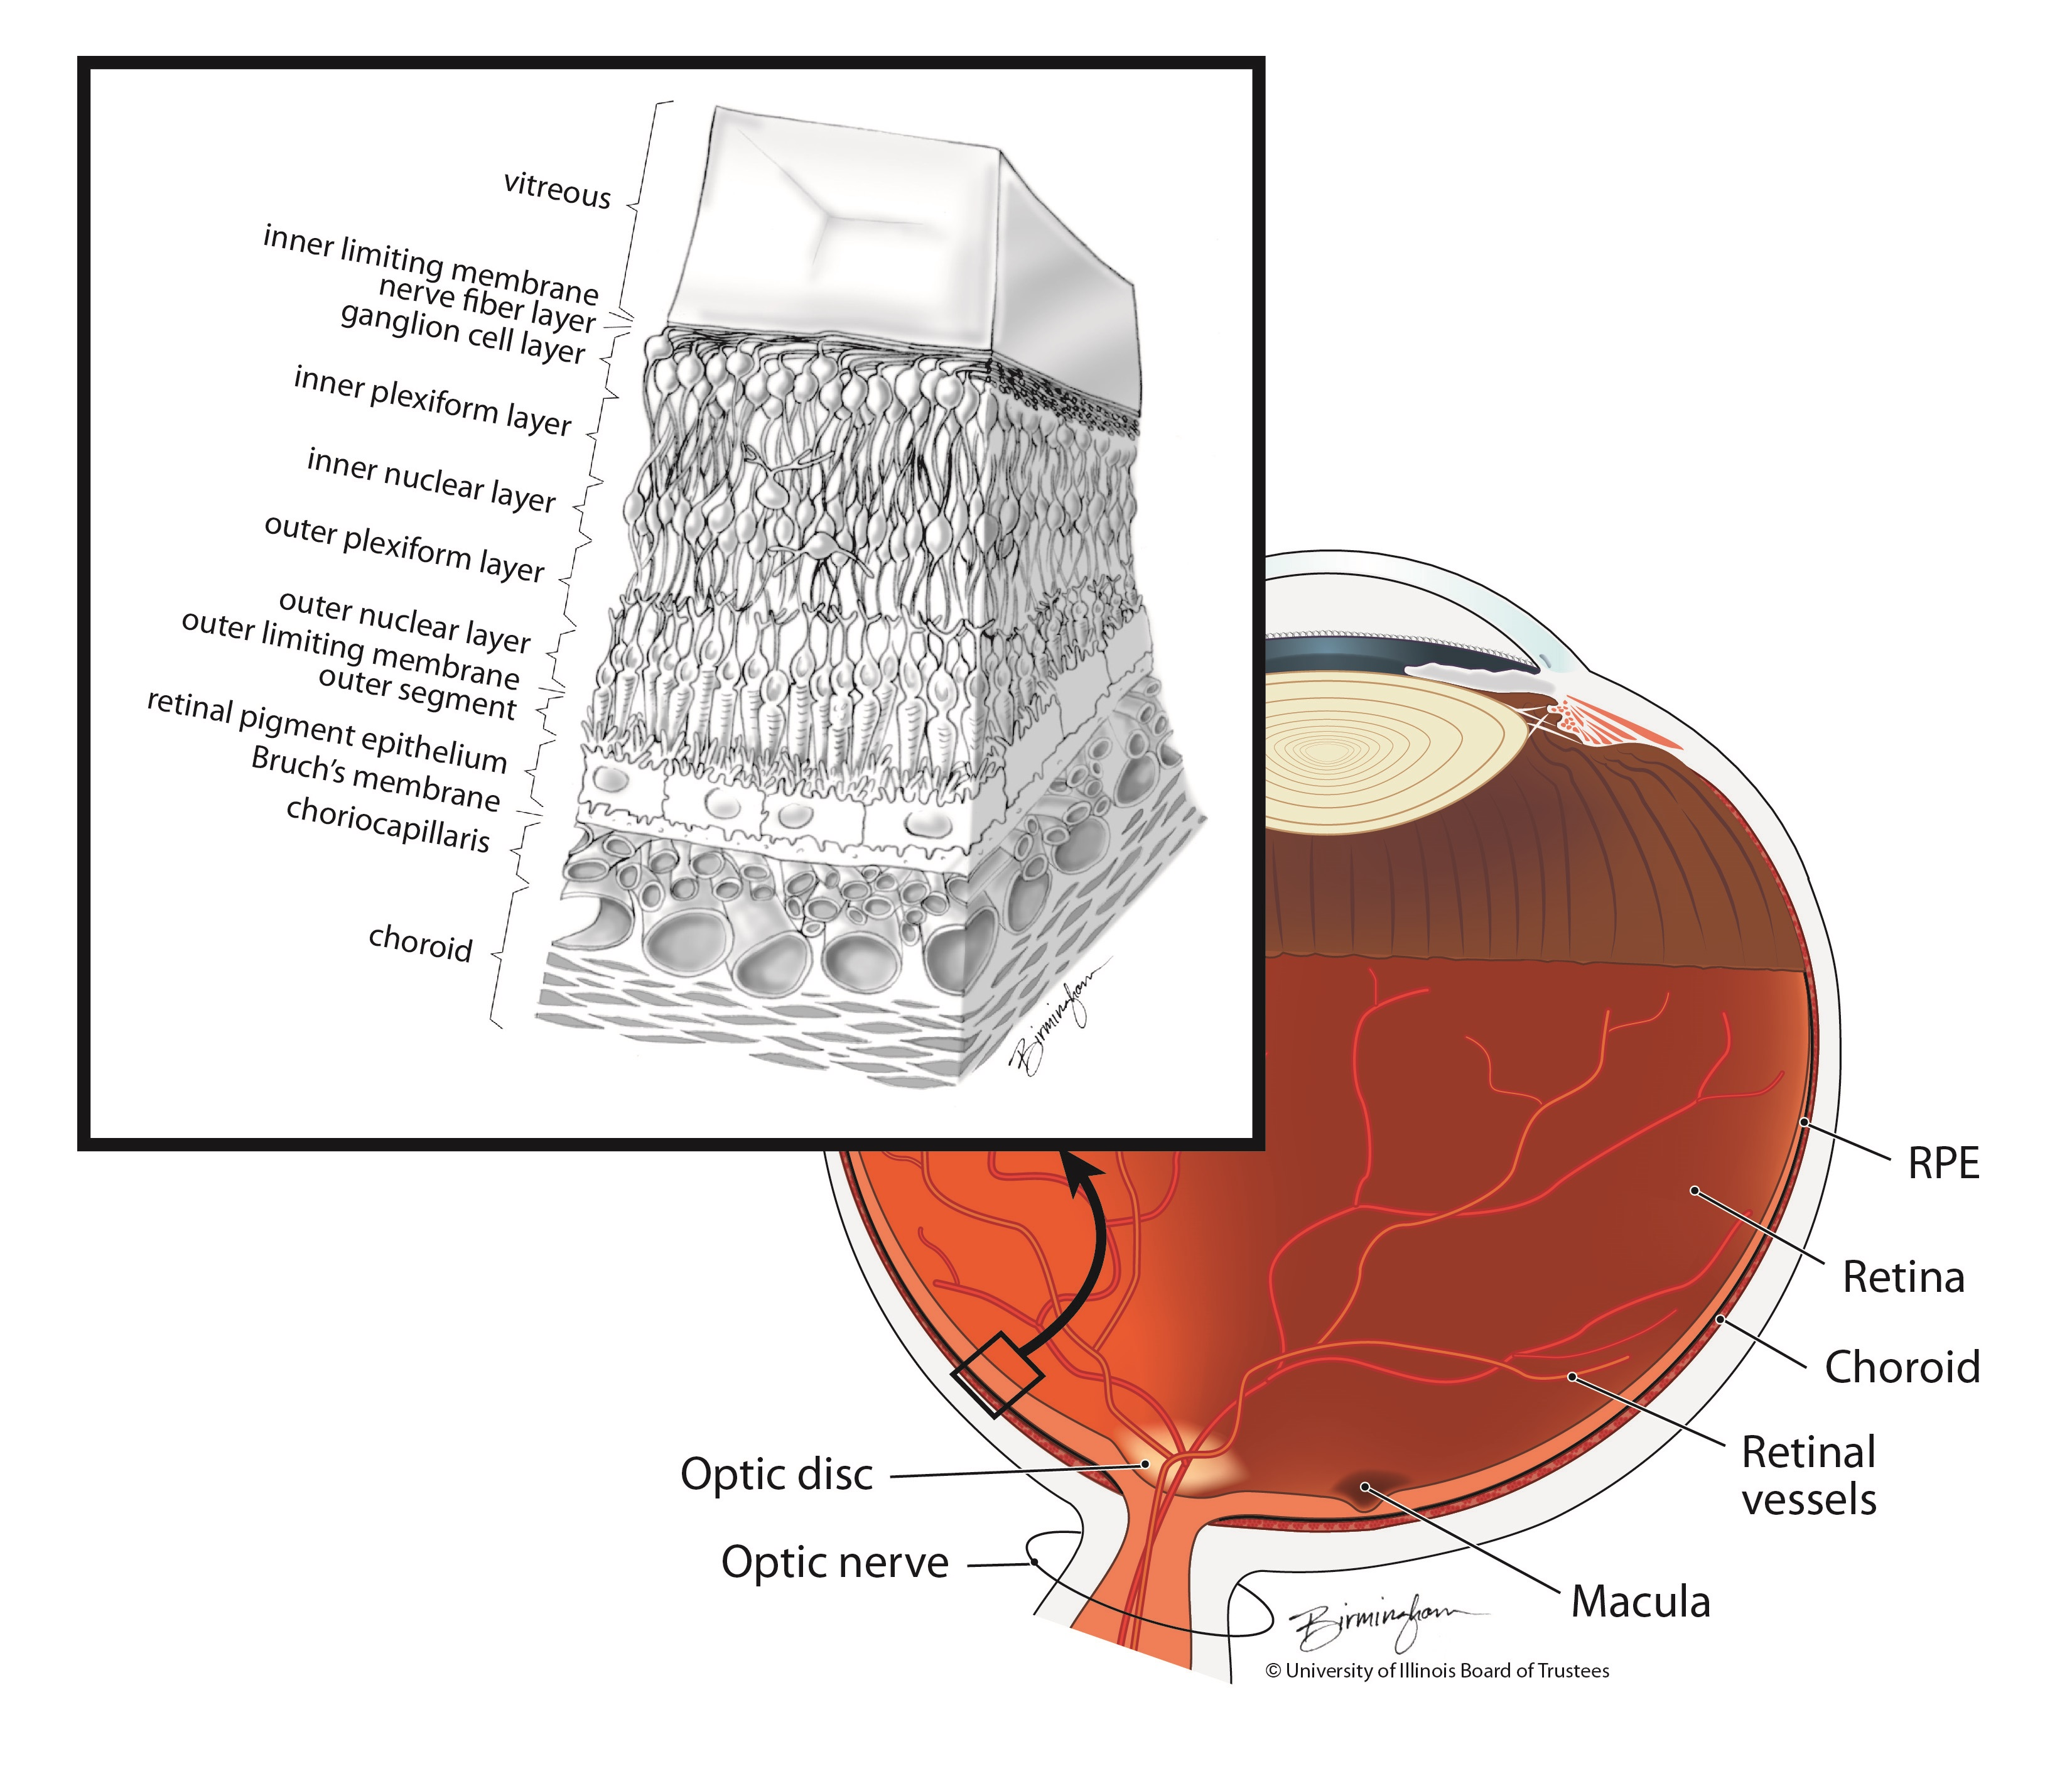 Clinical Trial Tests Cord Blood Cells To Treat Macular Degeneration